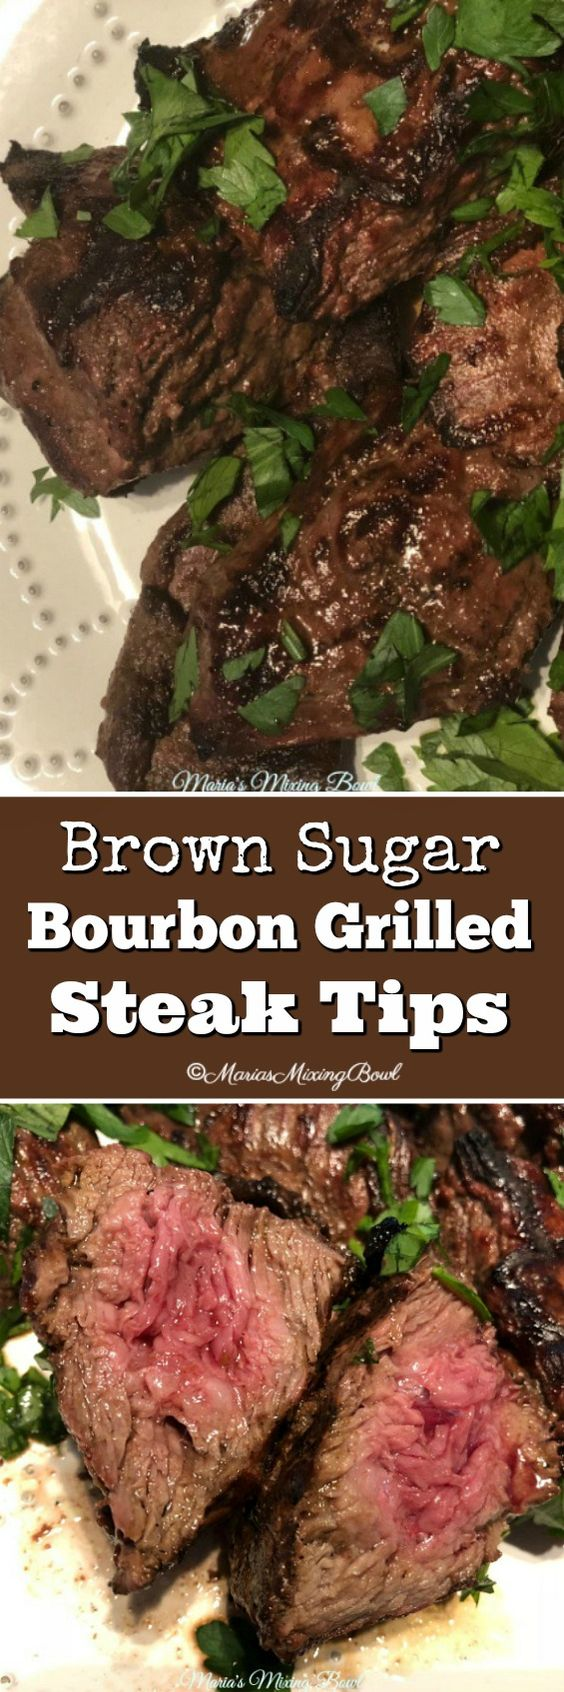 Brown Sugar Bourbon Grilled Steak Tips - flavorful and so amazing. You will love this tasty marinade. It has become one of our favorite marinades. So delicious!